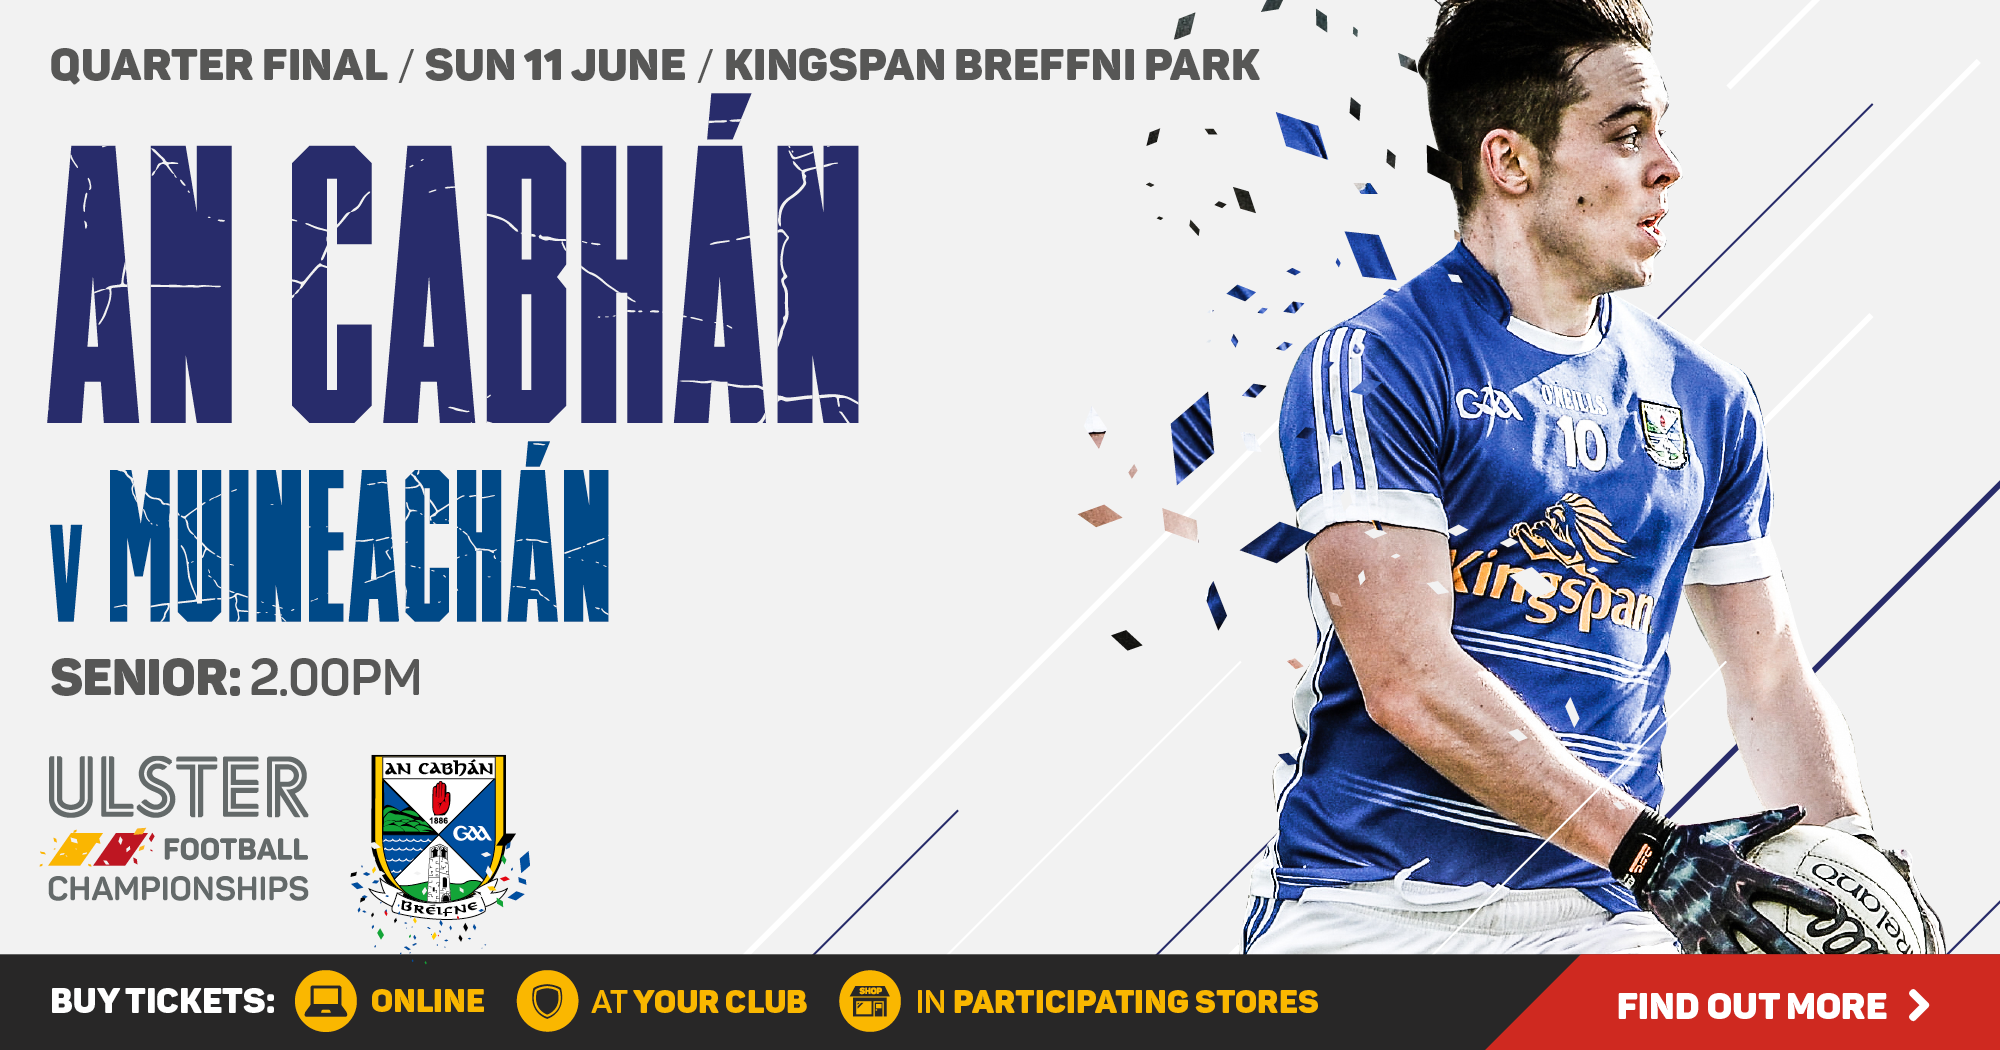 Ulster Football Championship 2017 - Quarter Final - Monaghan v Cavan